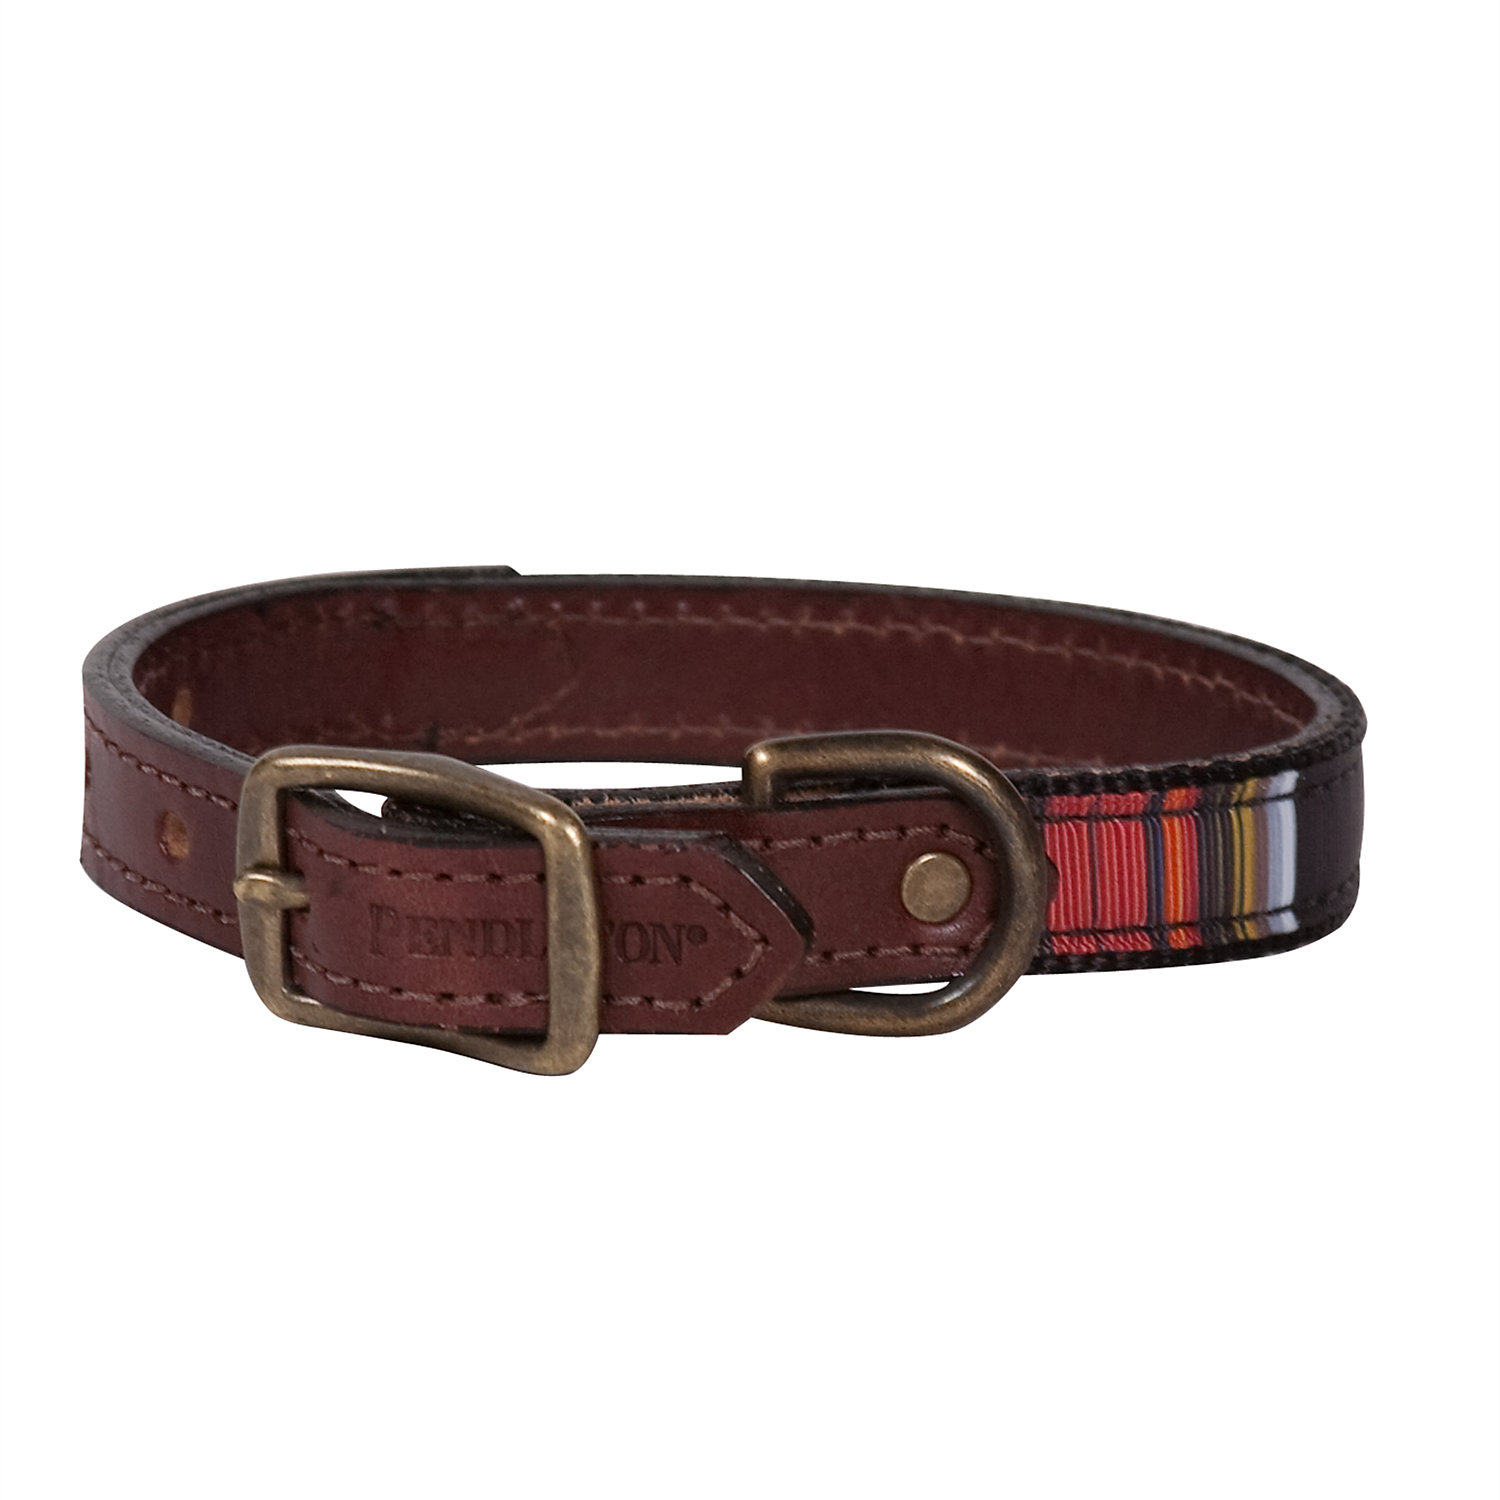 Pendleton Acadia National Park Explorer Dog Collar X Large